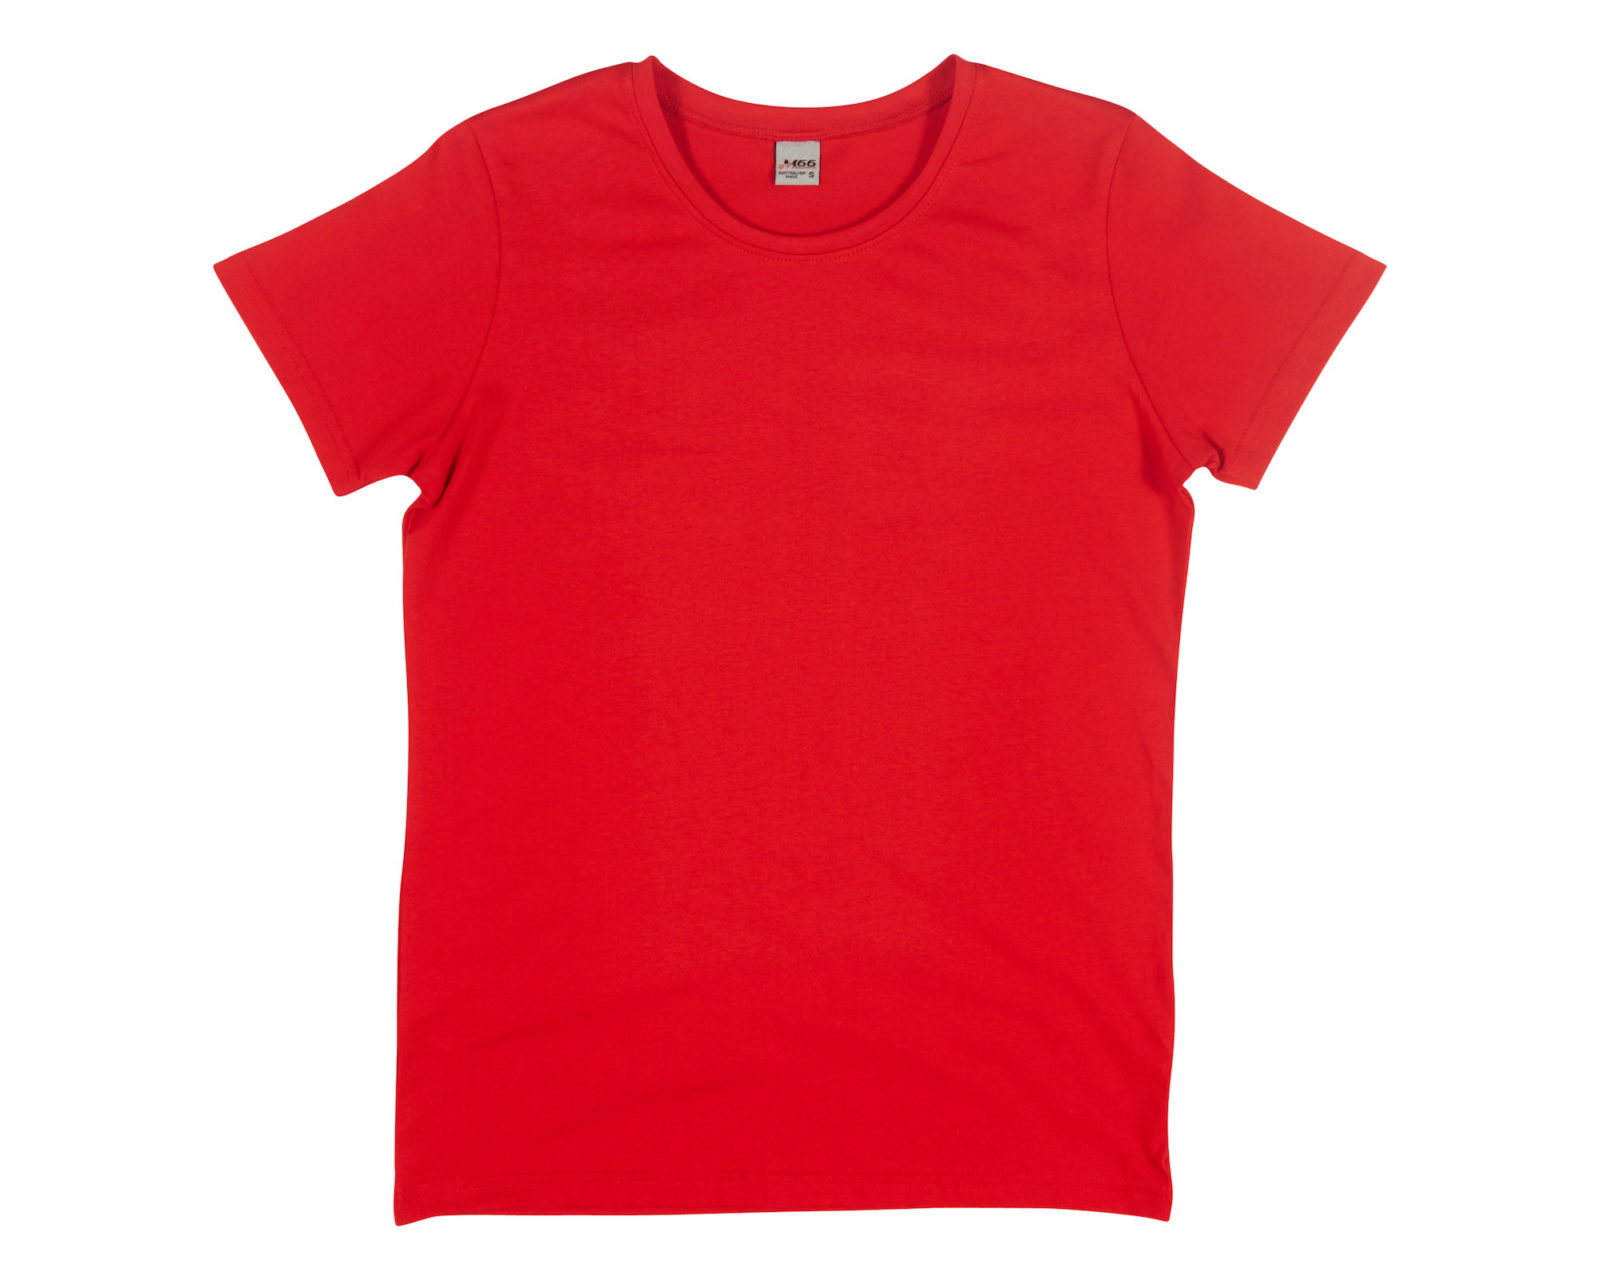 Qualitops Womens Short Sleeve Tee Cotton Australian made clothing